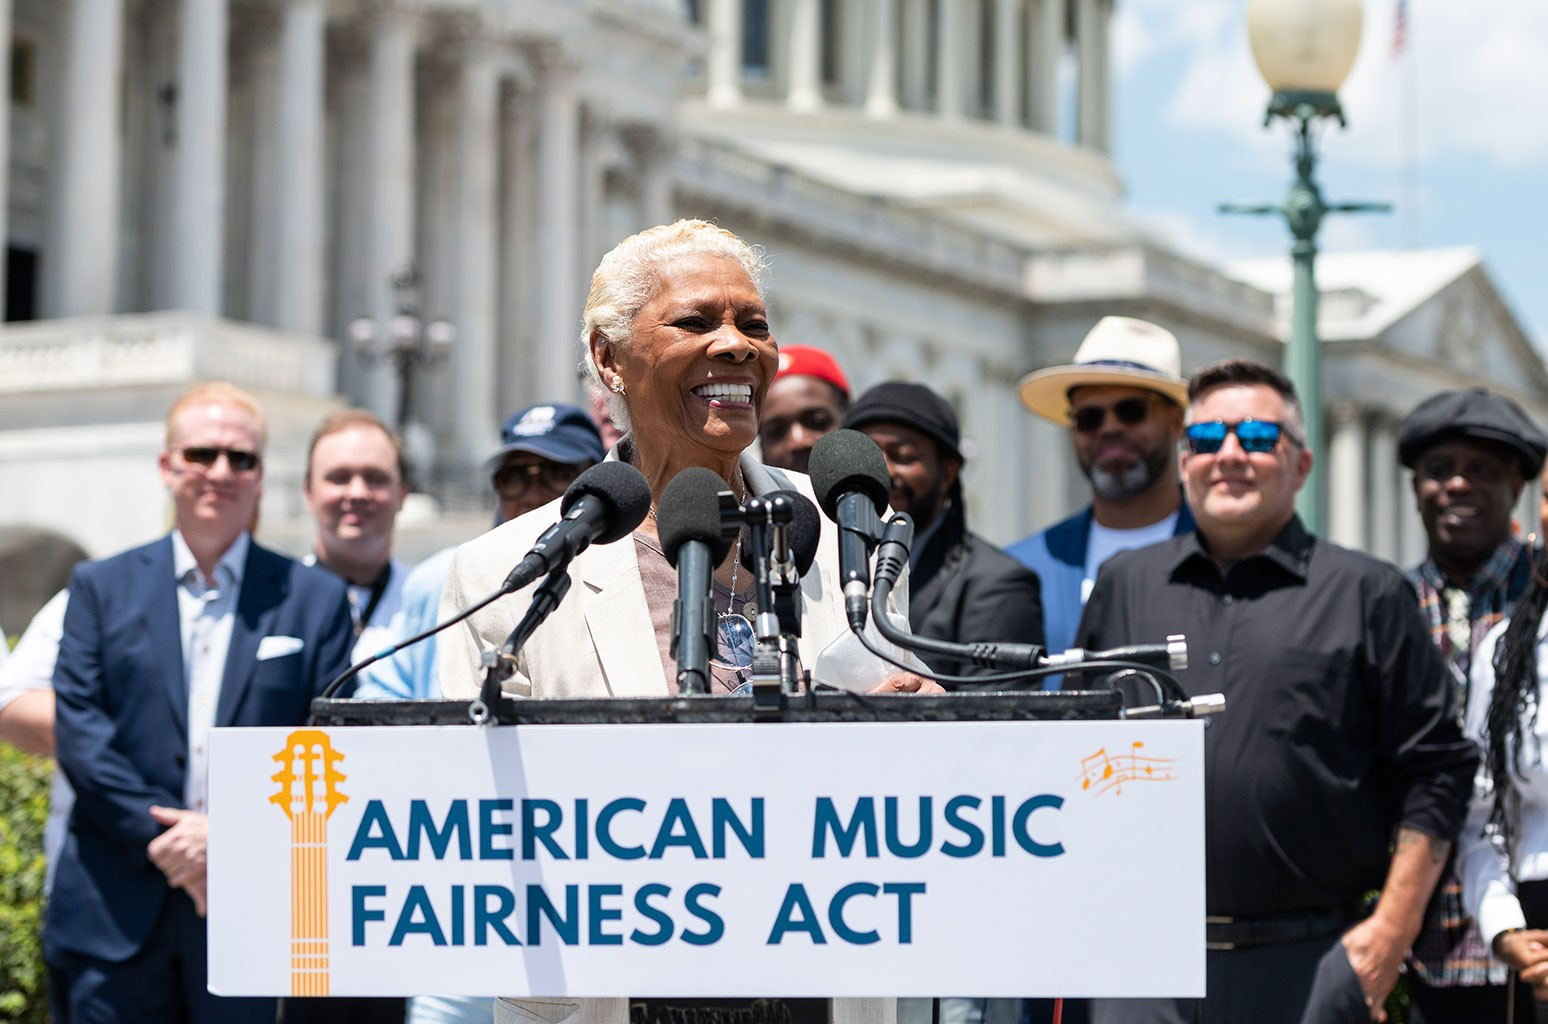 Congressional Bill Renews Effort to Get Artists, Labels Paid for Radio Airplay